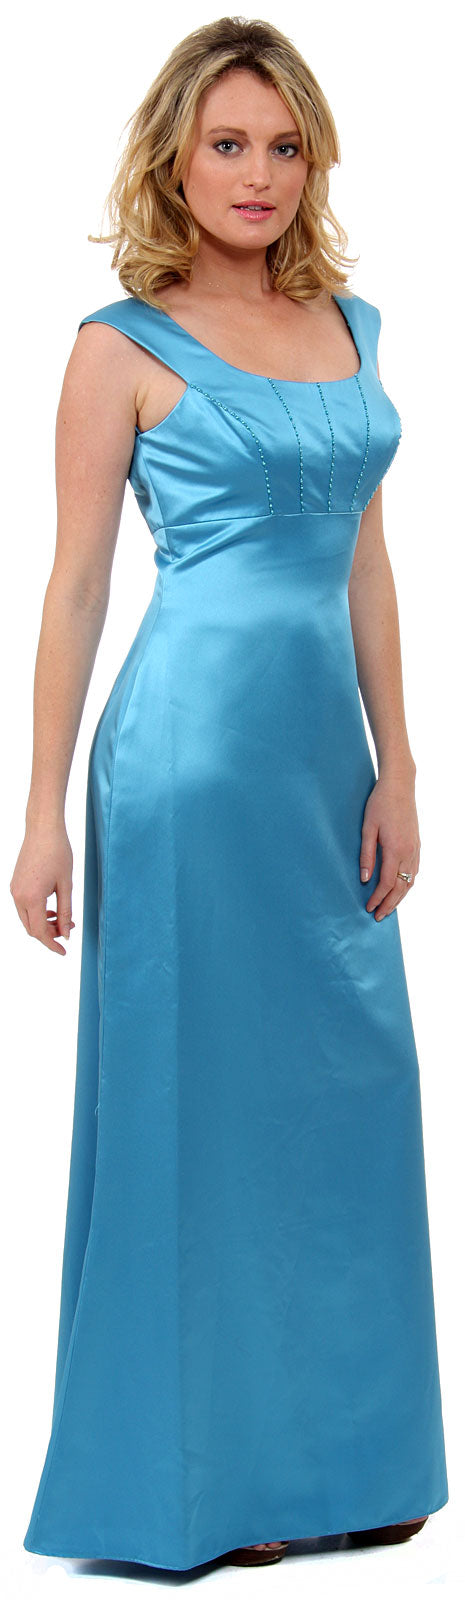 Image of Boat Neck Beaded Bridesmaid Dress in Carribean Blue